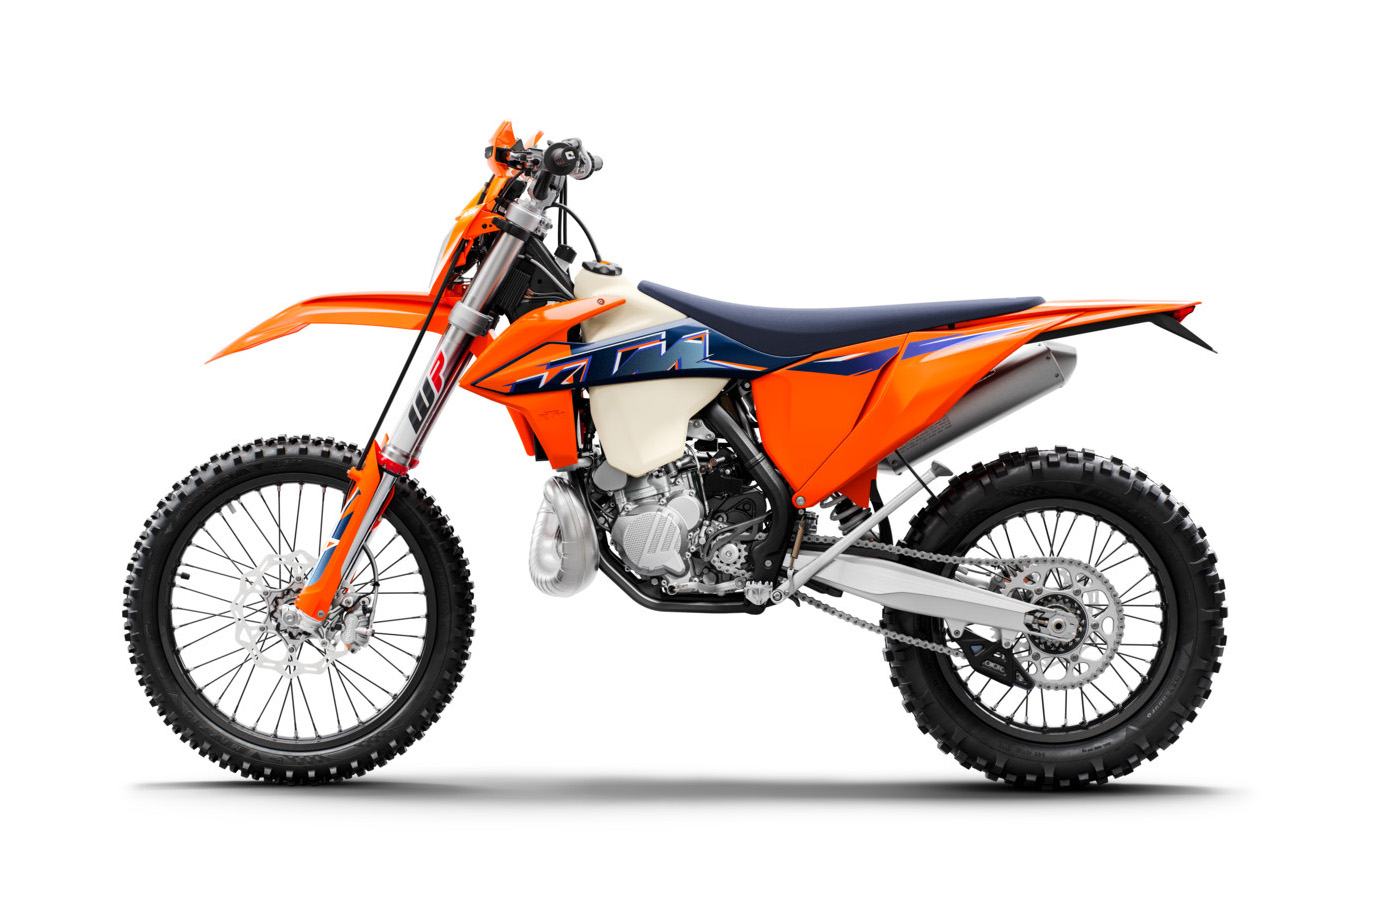 First look: 2022 KTM EXC and XC-W Enduro model range